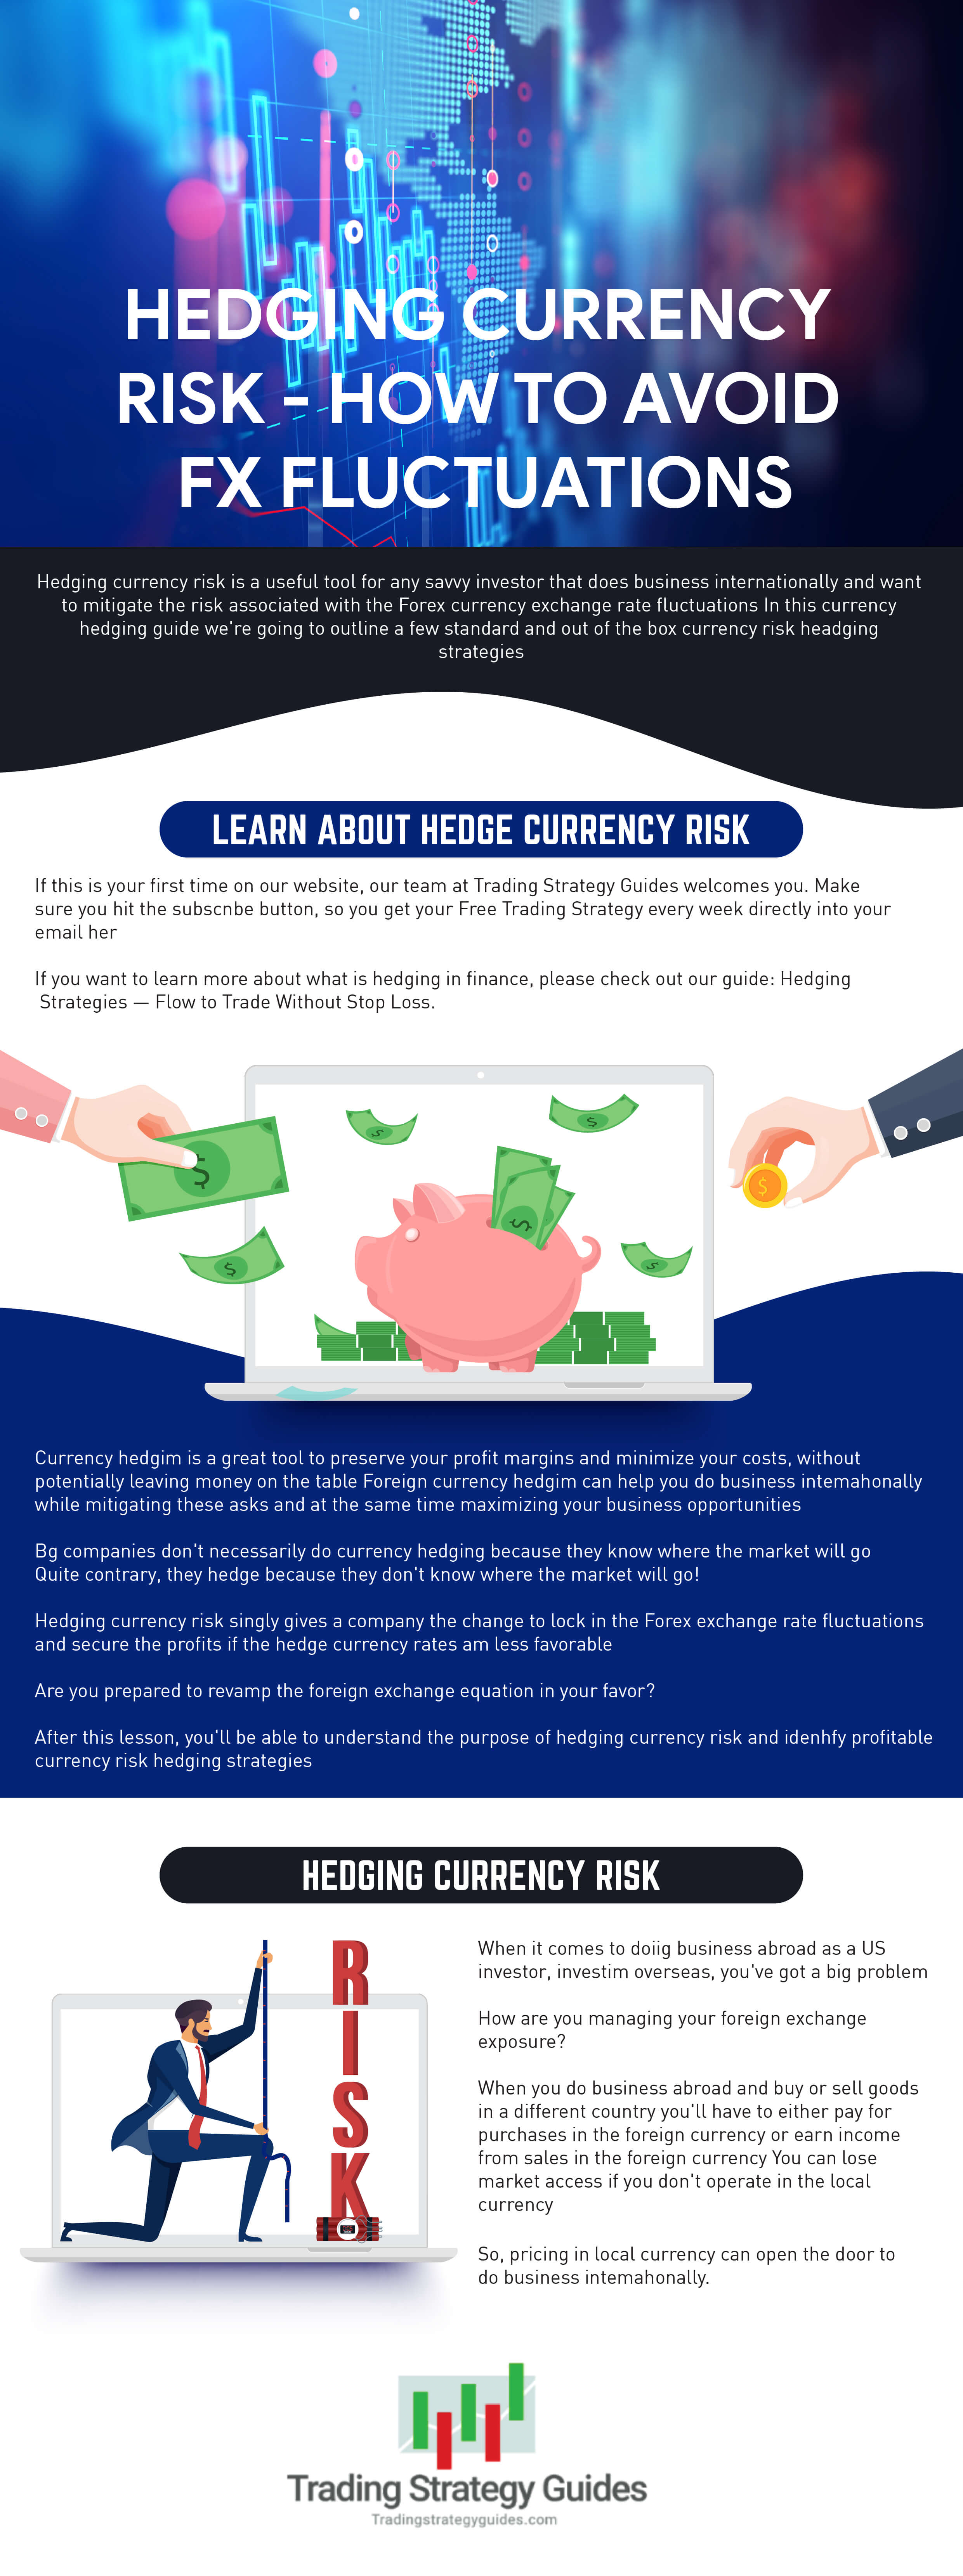 Currency Hedging – How to Avoid Risk in FX Fluctuations